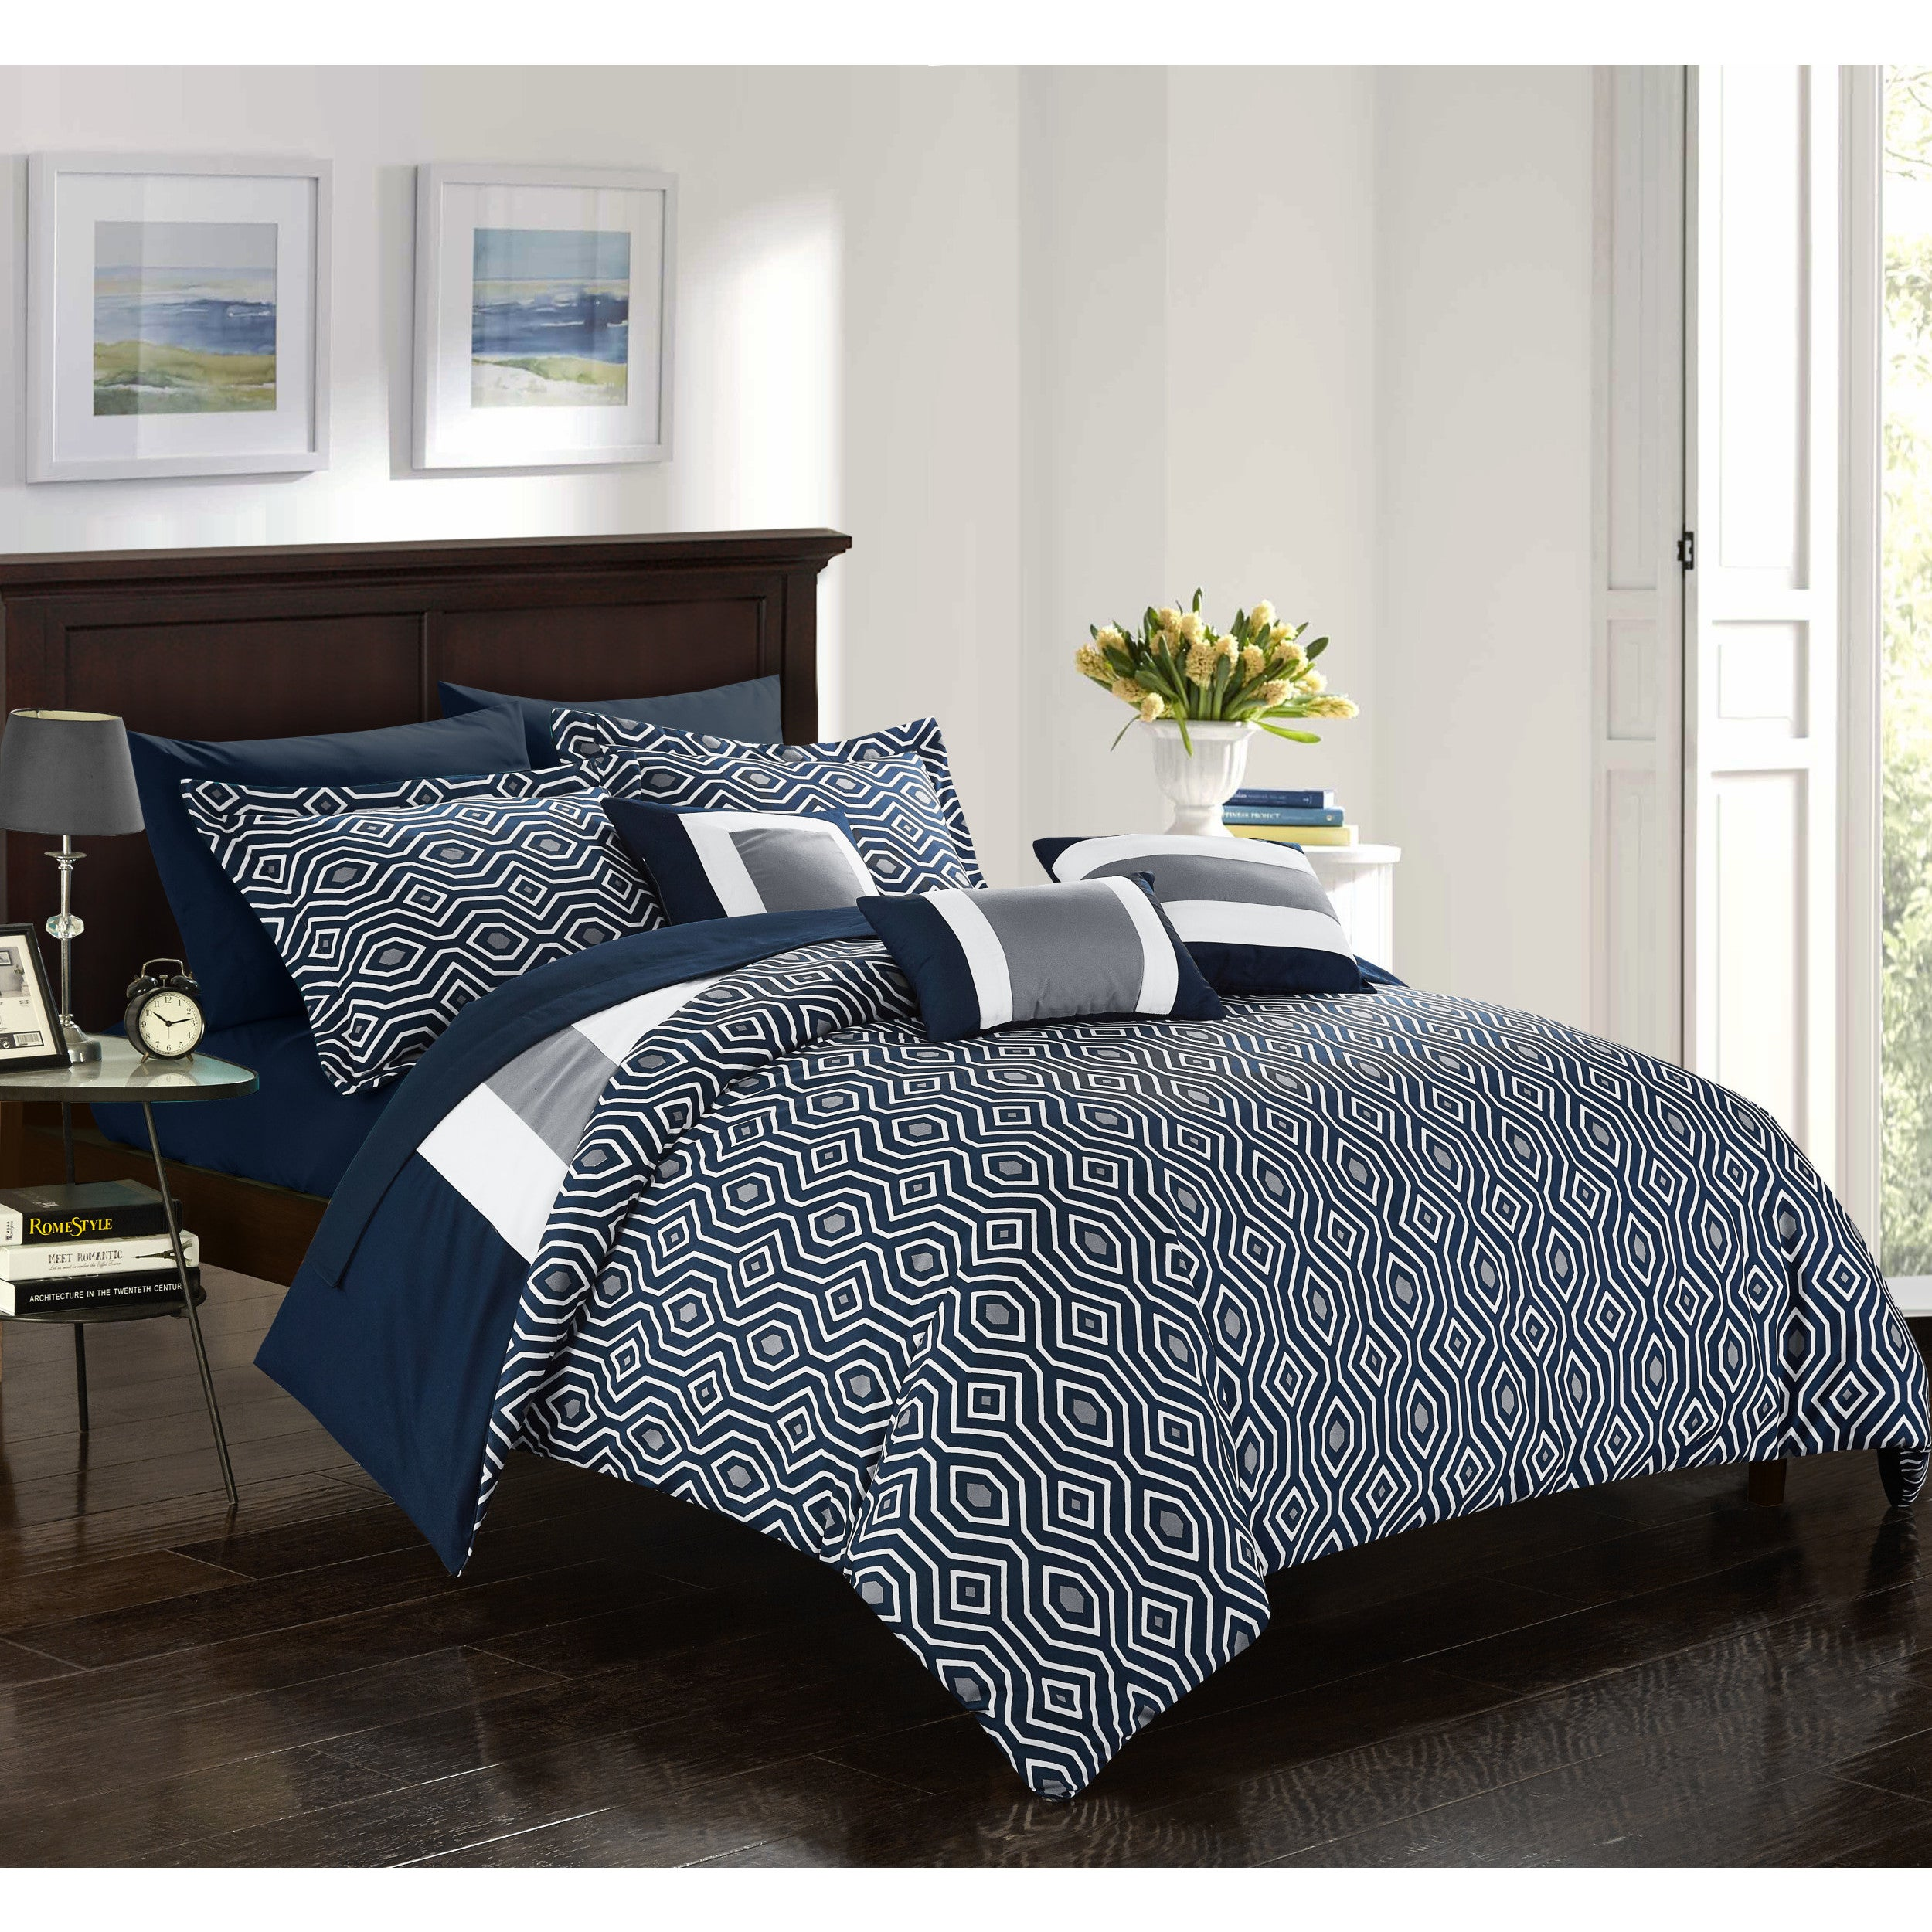 bed bedding chic shipping home navy sets bath set collection piece reversible free overstock heldin today comforter in a bag hotel product